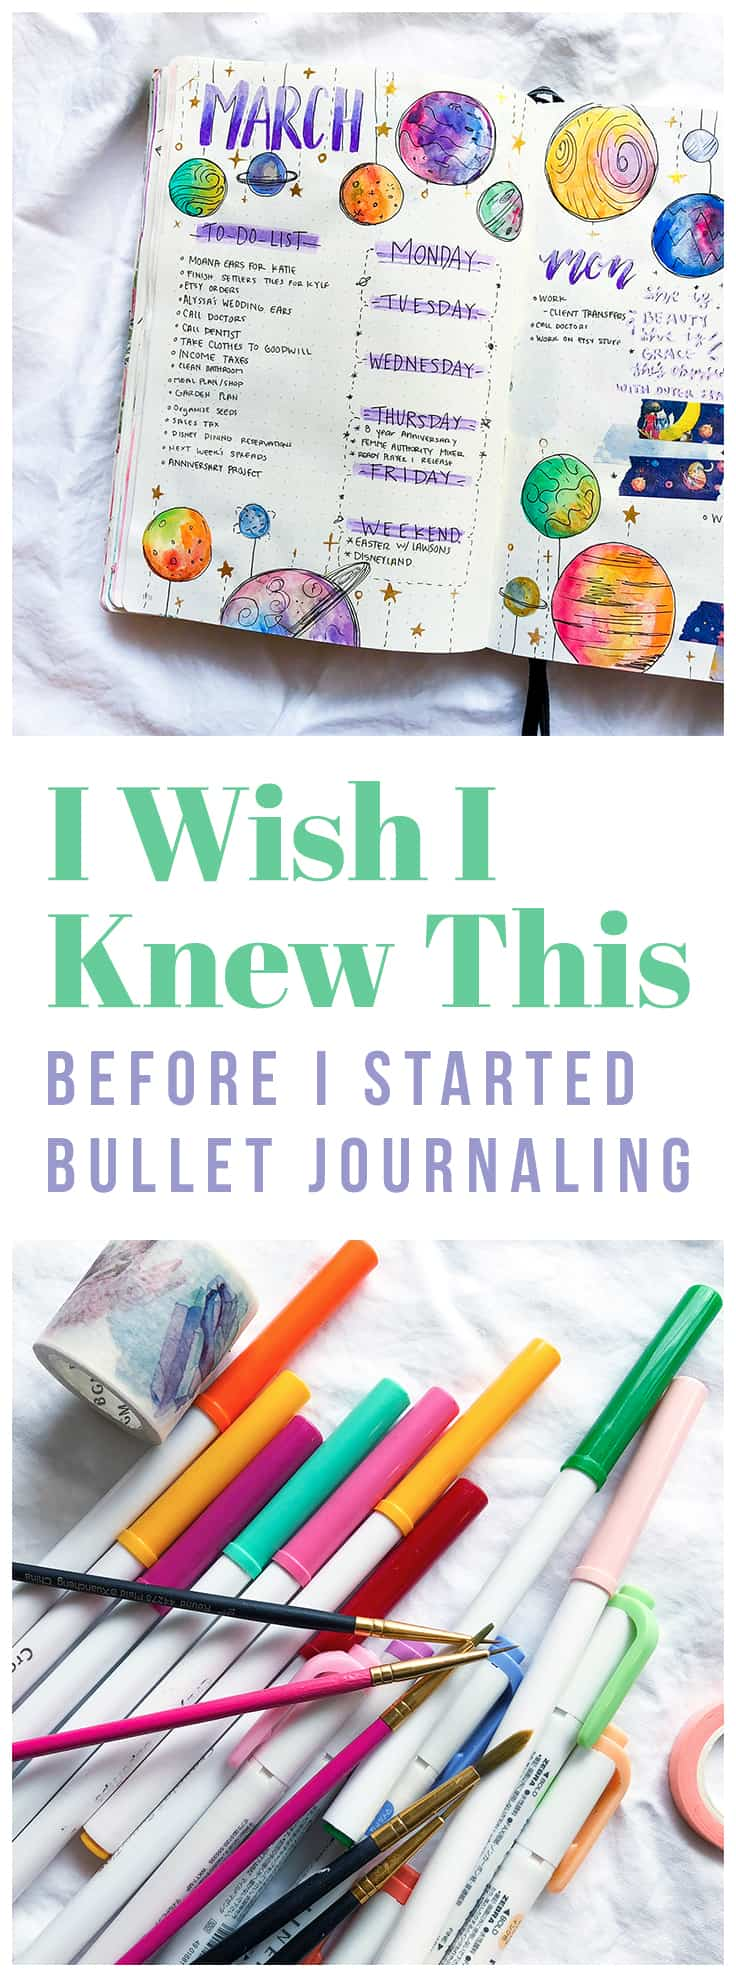 There are several things that I wish I knew before I started Bullet Journaling, but the biggest piece of advice I have is to not give up! Mistakes are a part of bullet journaling, and It doesn't have to look like something you saw on Instagram. Bullet Journaling is not about being productive all the time, but rather giving you the freedom to do the things you want!  #bulletjournal #bulletjournaltips #planning #productivity #startabulletjournal